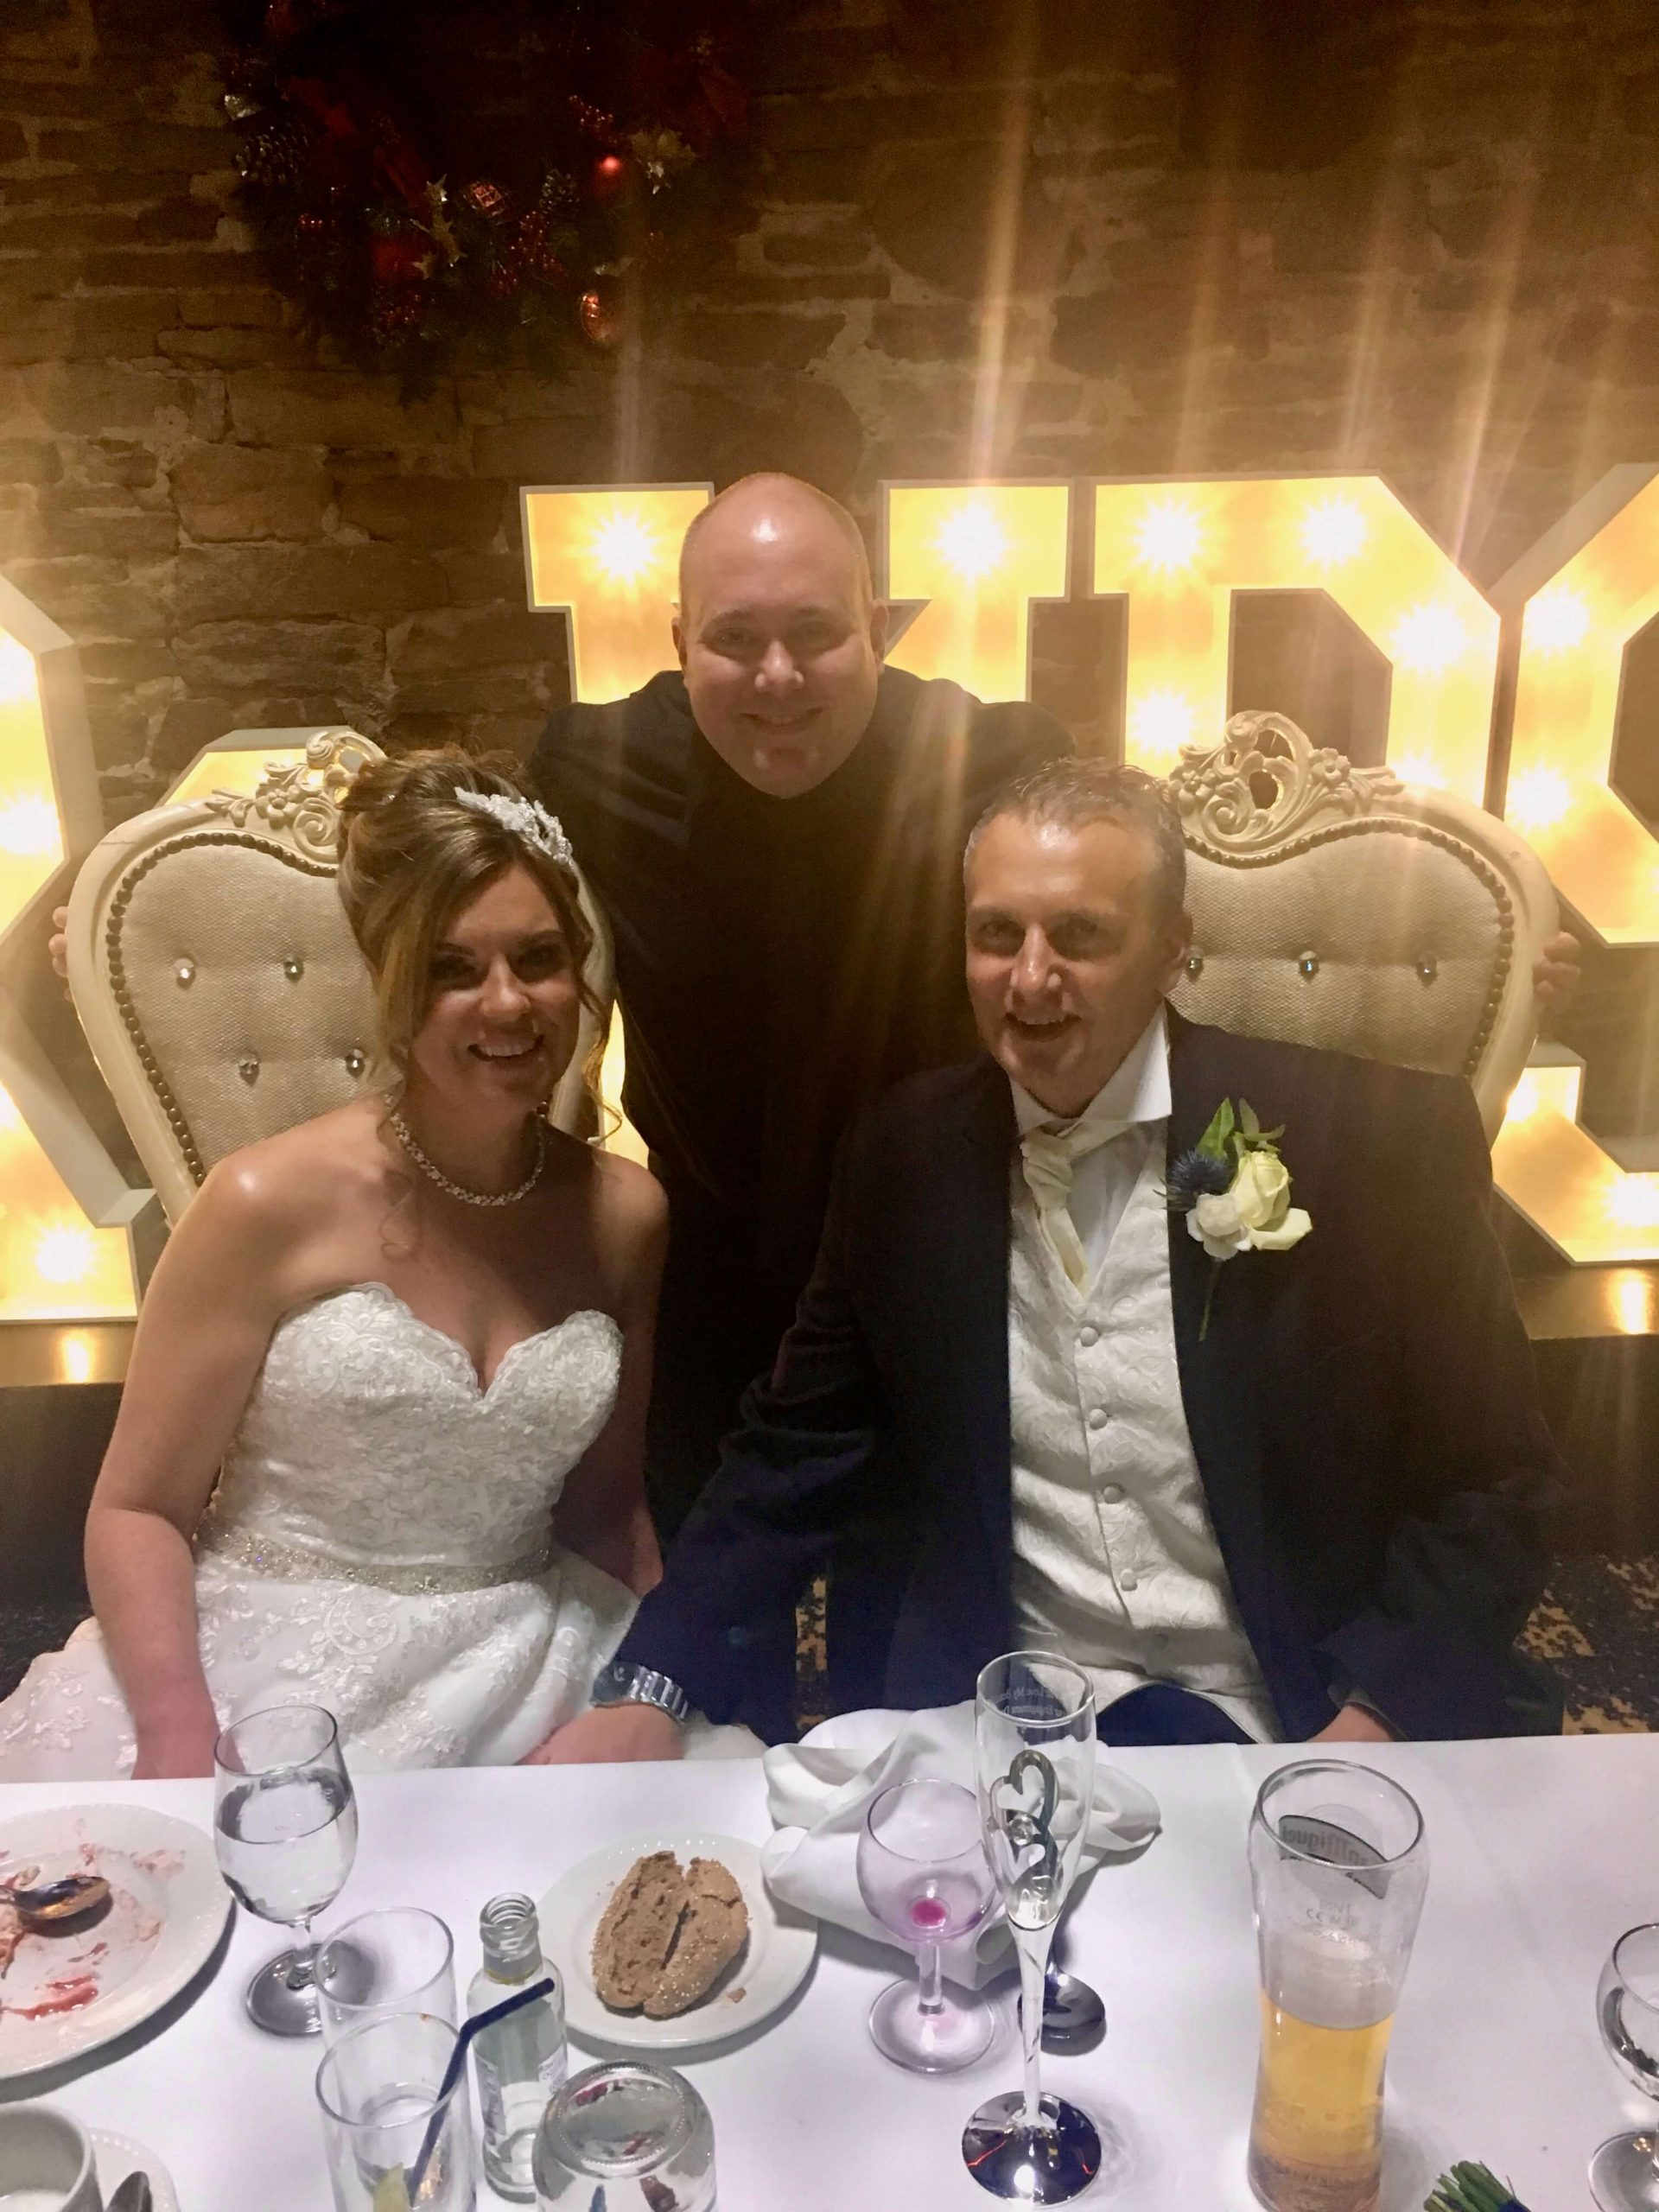 Lancashire Manor wedding music by Mark the Piano Guy for Mr & Mrs Kirby